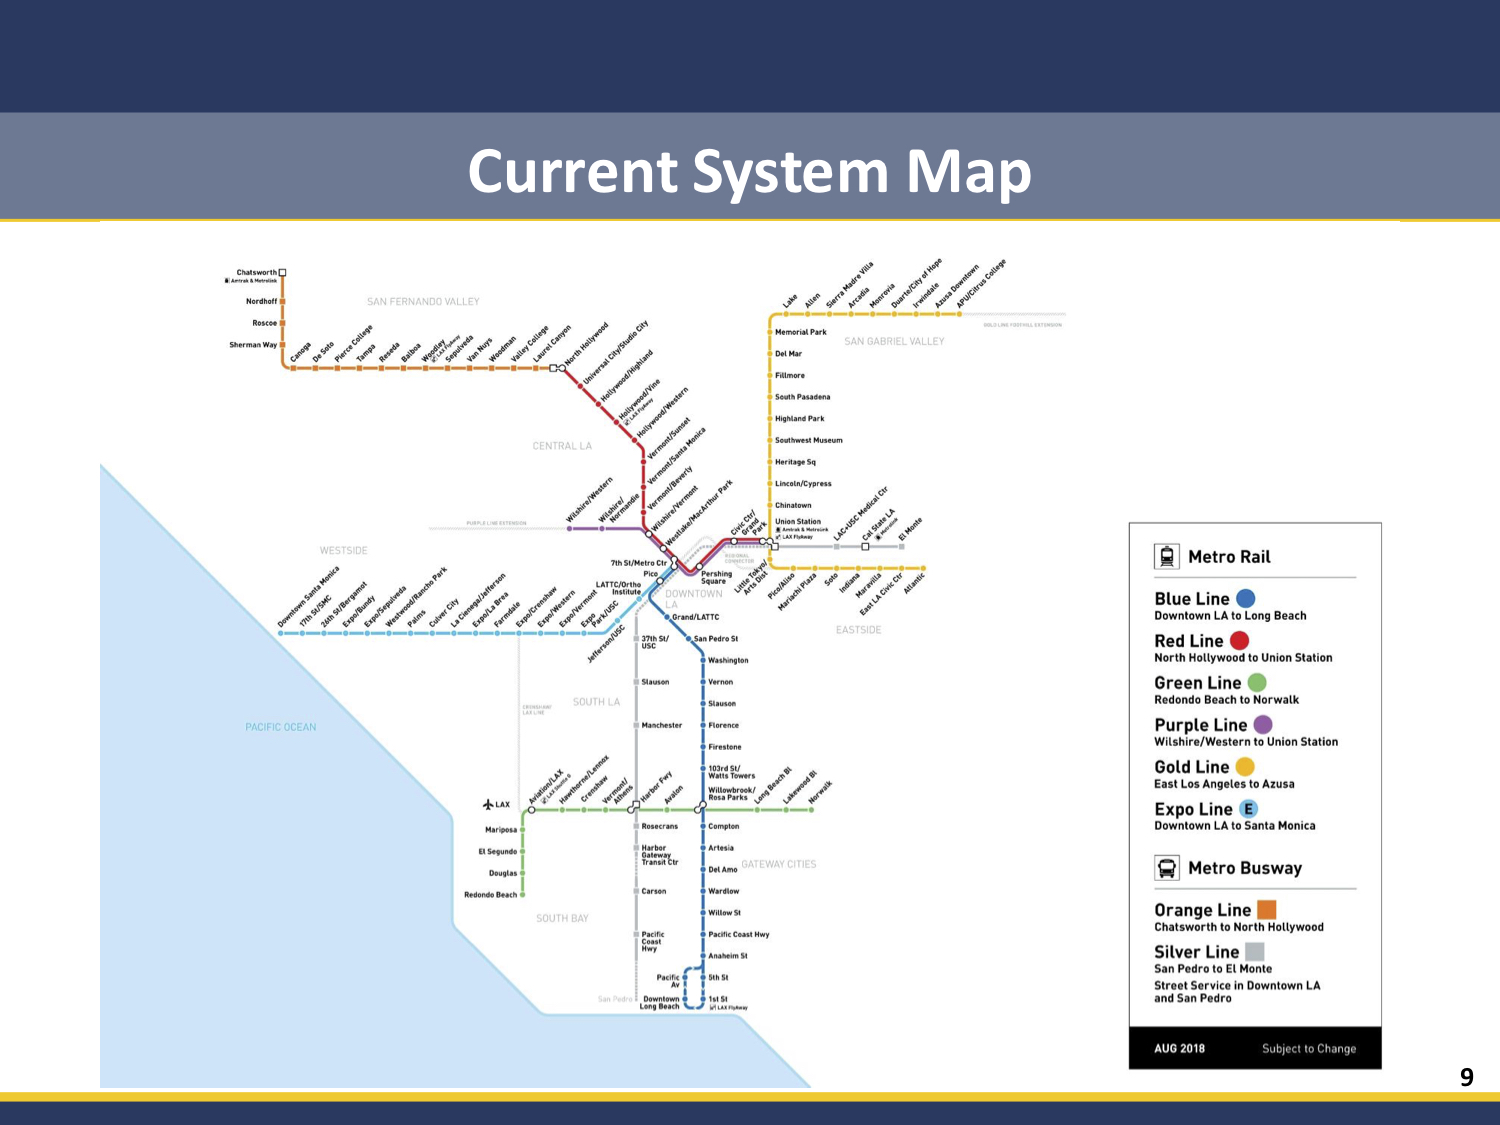 Current La Subway Map.Want To Ride The Pink Line Or The Q Line La Metro Is Studying How